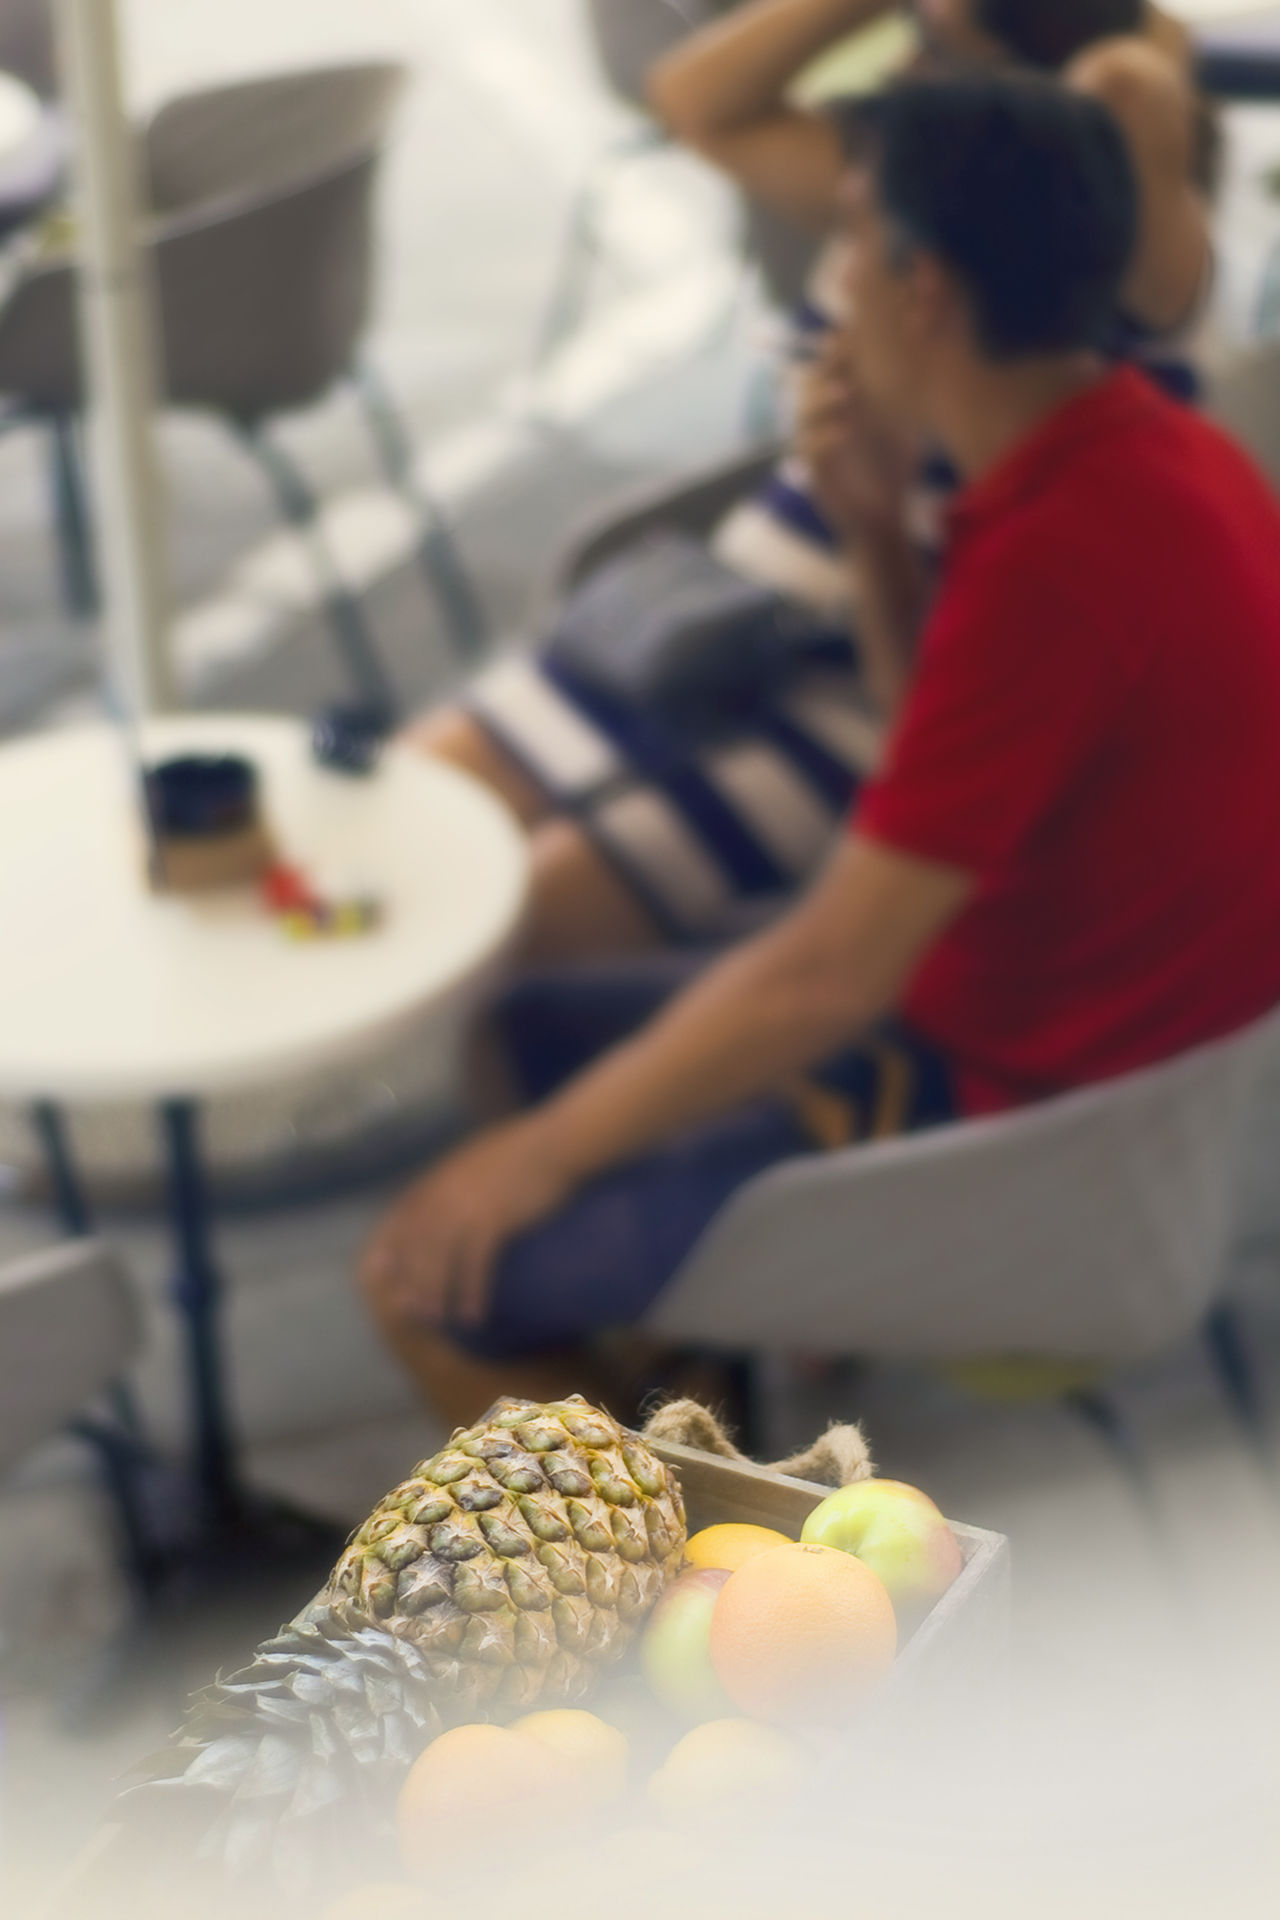 Coffee House Croatia Dalmatia Food Food And Drink Freshness Fruit Fruit Bowl Having A Coffee Having A Good Time Having A Rest Healthy Eating; Healthy Food Pineapples Pineapple🍍 Trogir